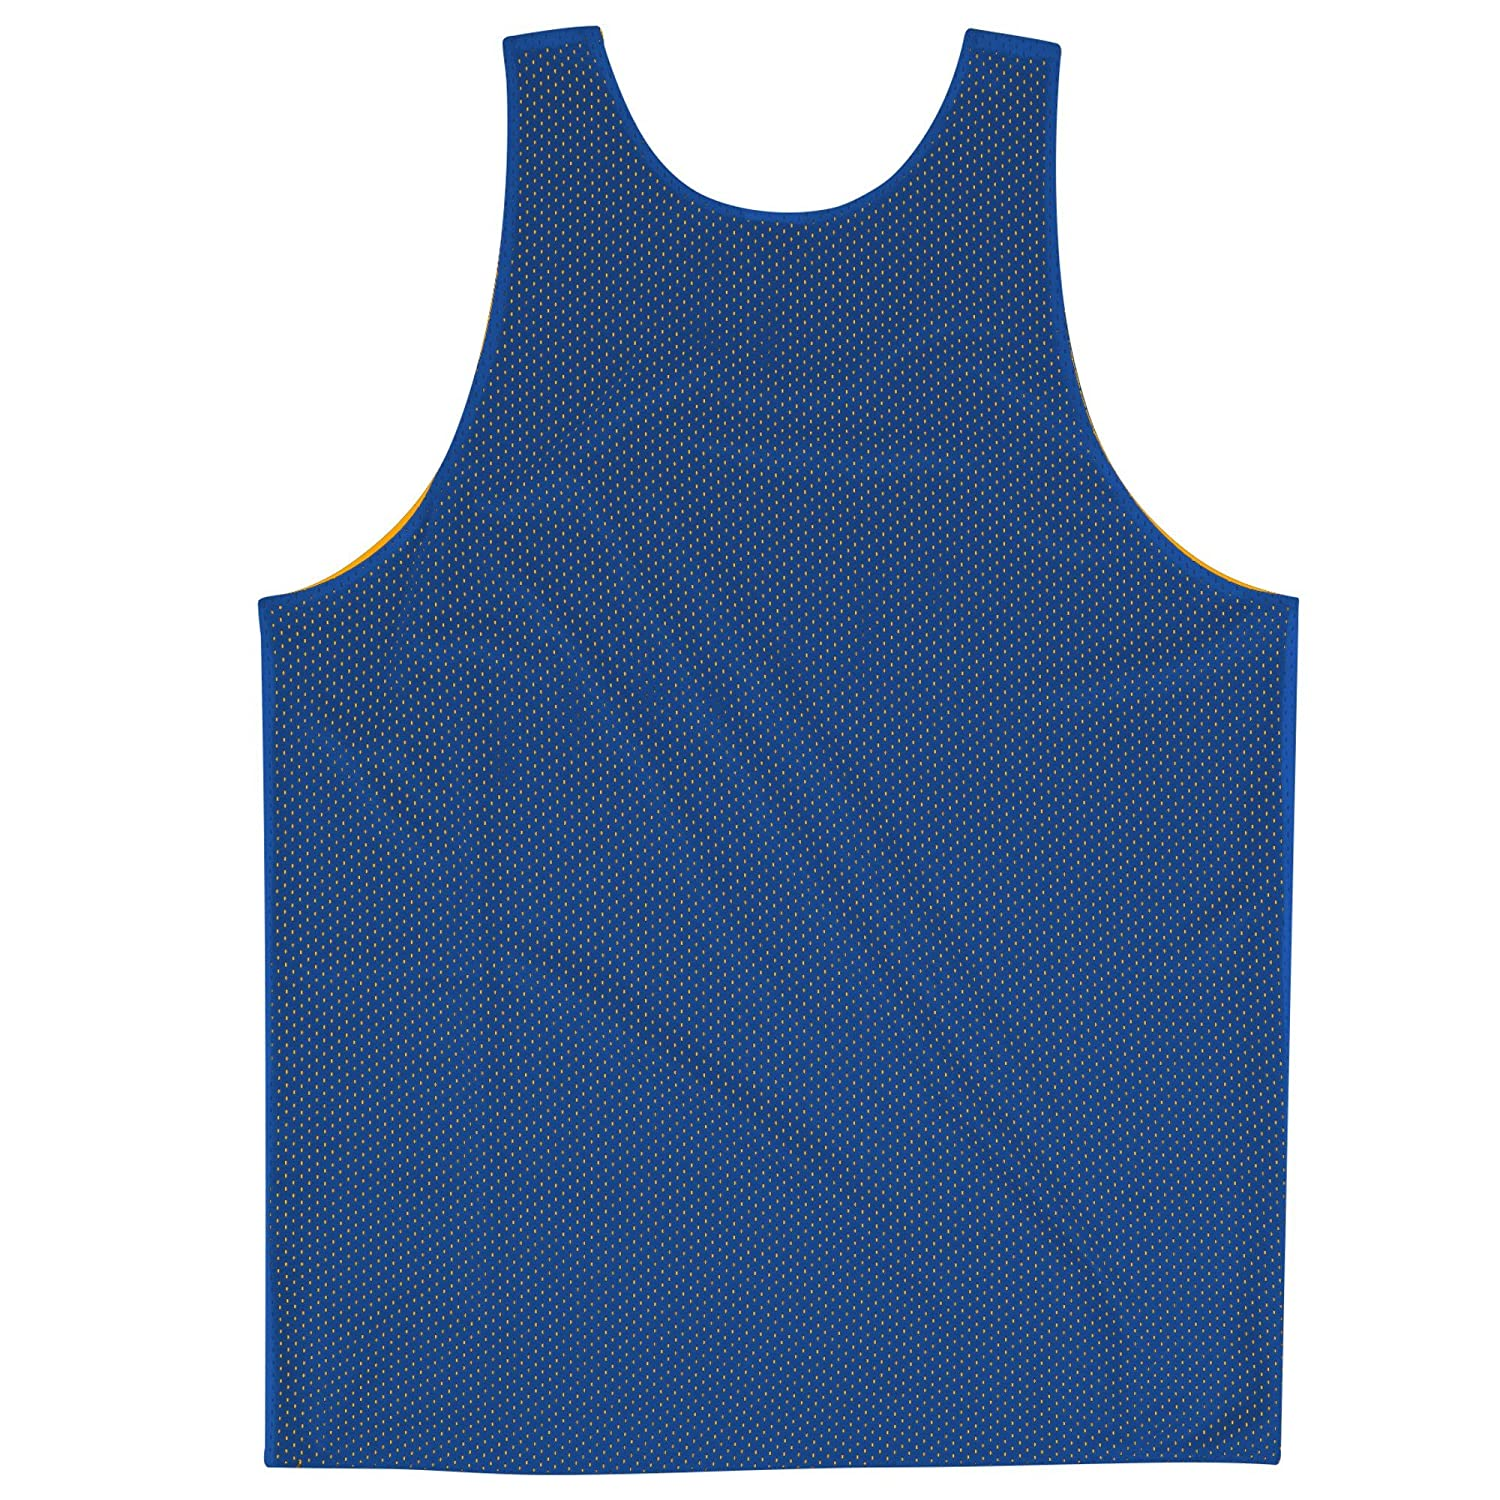 Amazon.com : Golden State Warriors NBA Mitchell & Ness Mens Drop Step Retro Mesh Reversible Tank Top : Sports & Outdoors